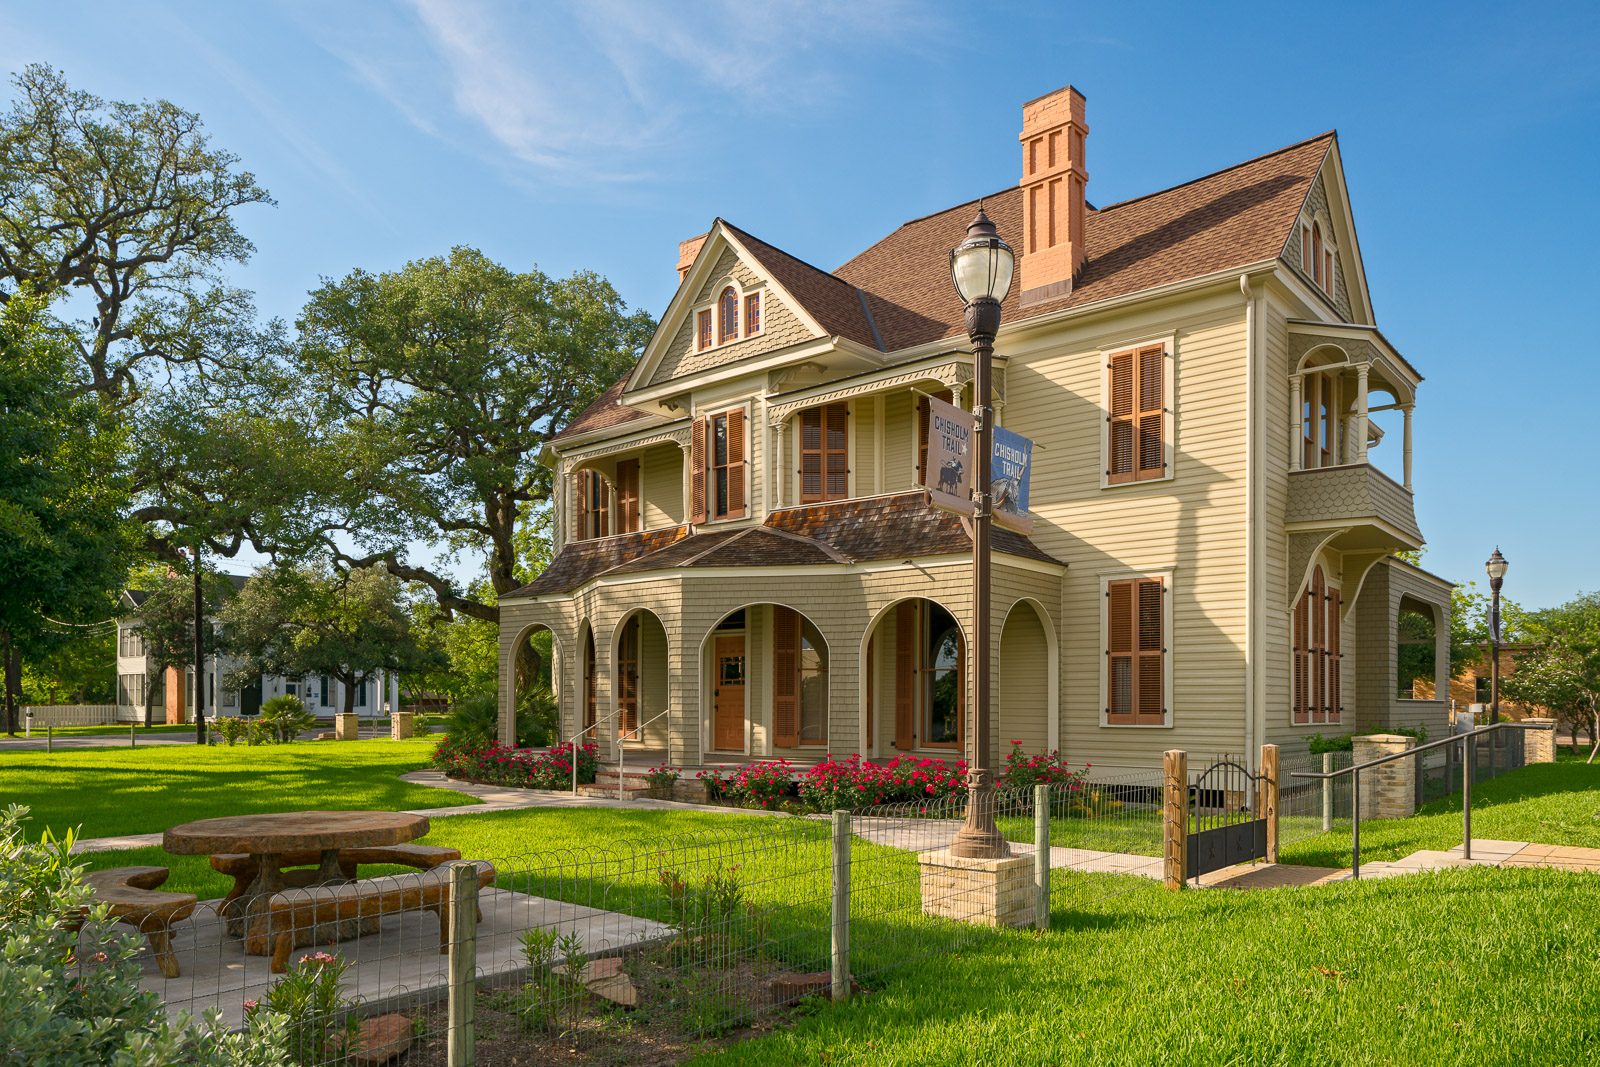 20190426-Proctor Green and Schoolhouse-Web Size-3.jpg